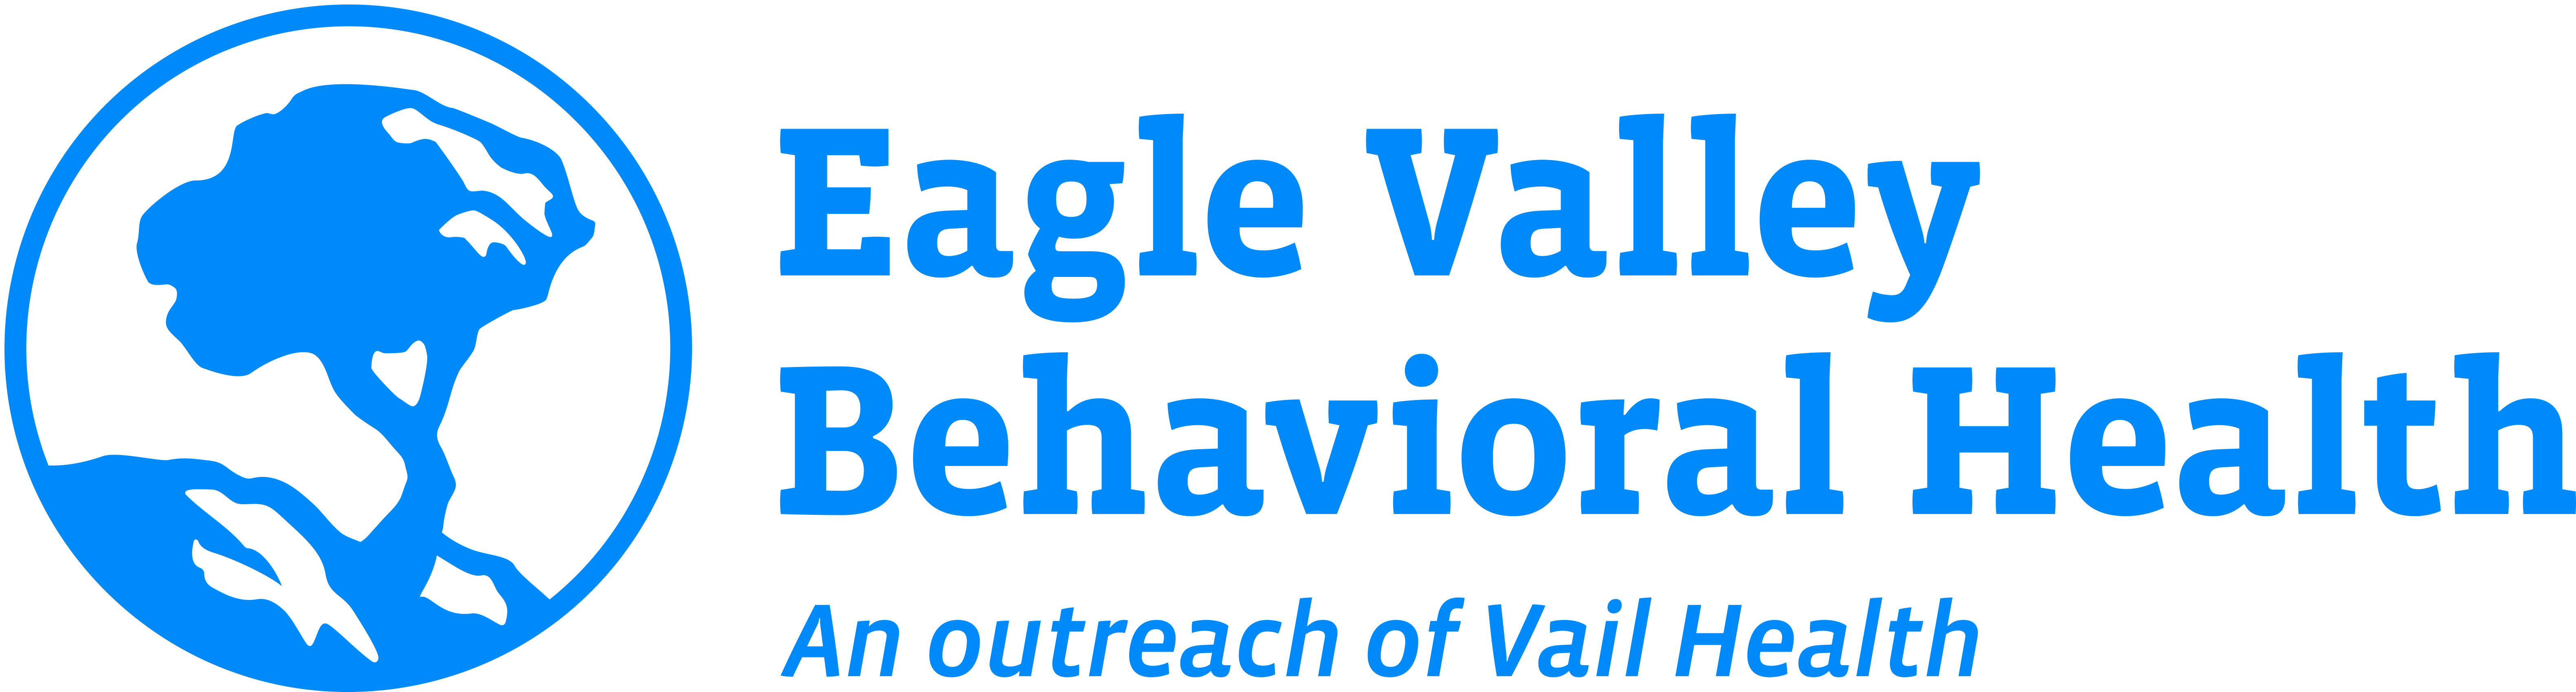 Eagle Valley Behavioral Health | Mental Health Resources